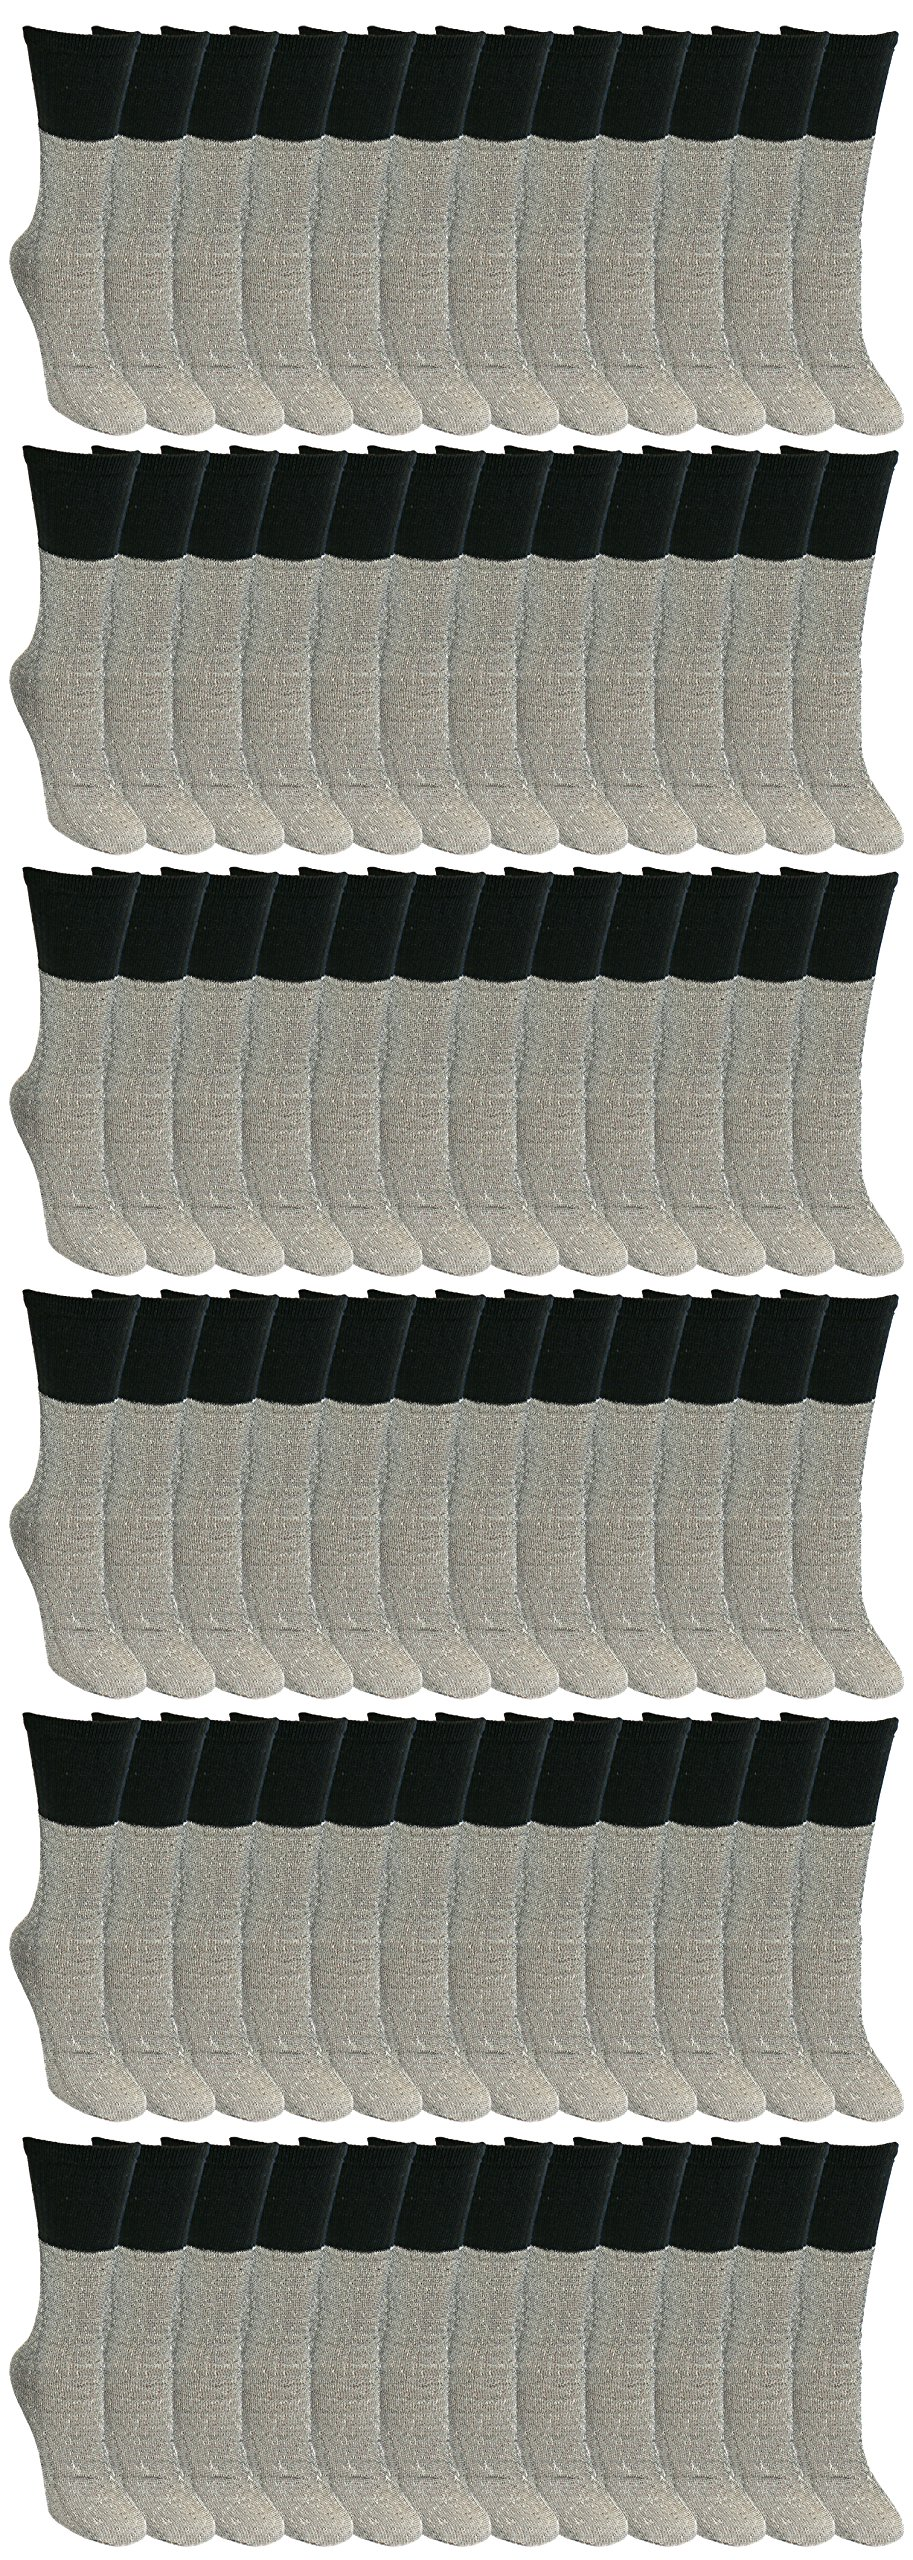 72 Pairs Thermal Tube Socks for Women, Wholesale Bulk Heat Retainer Cold Winter Ladies Boot Sock (Gray with Black Top)